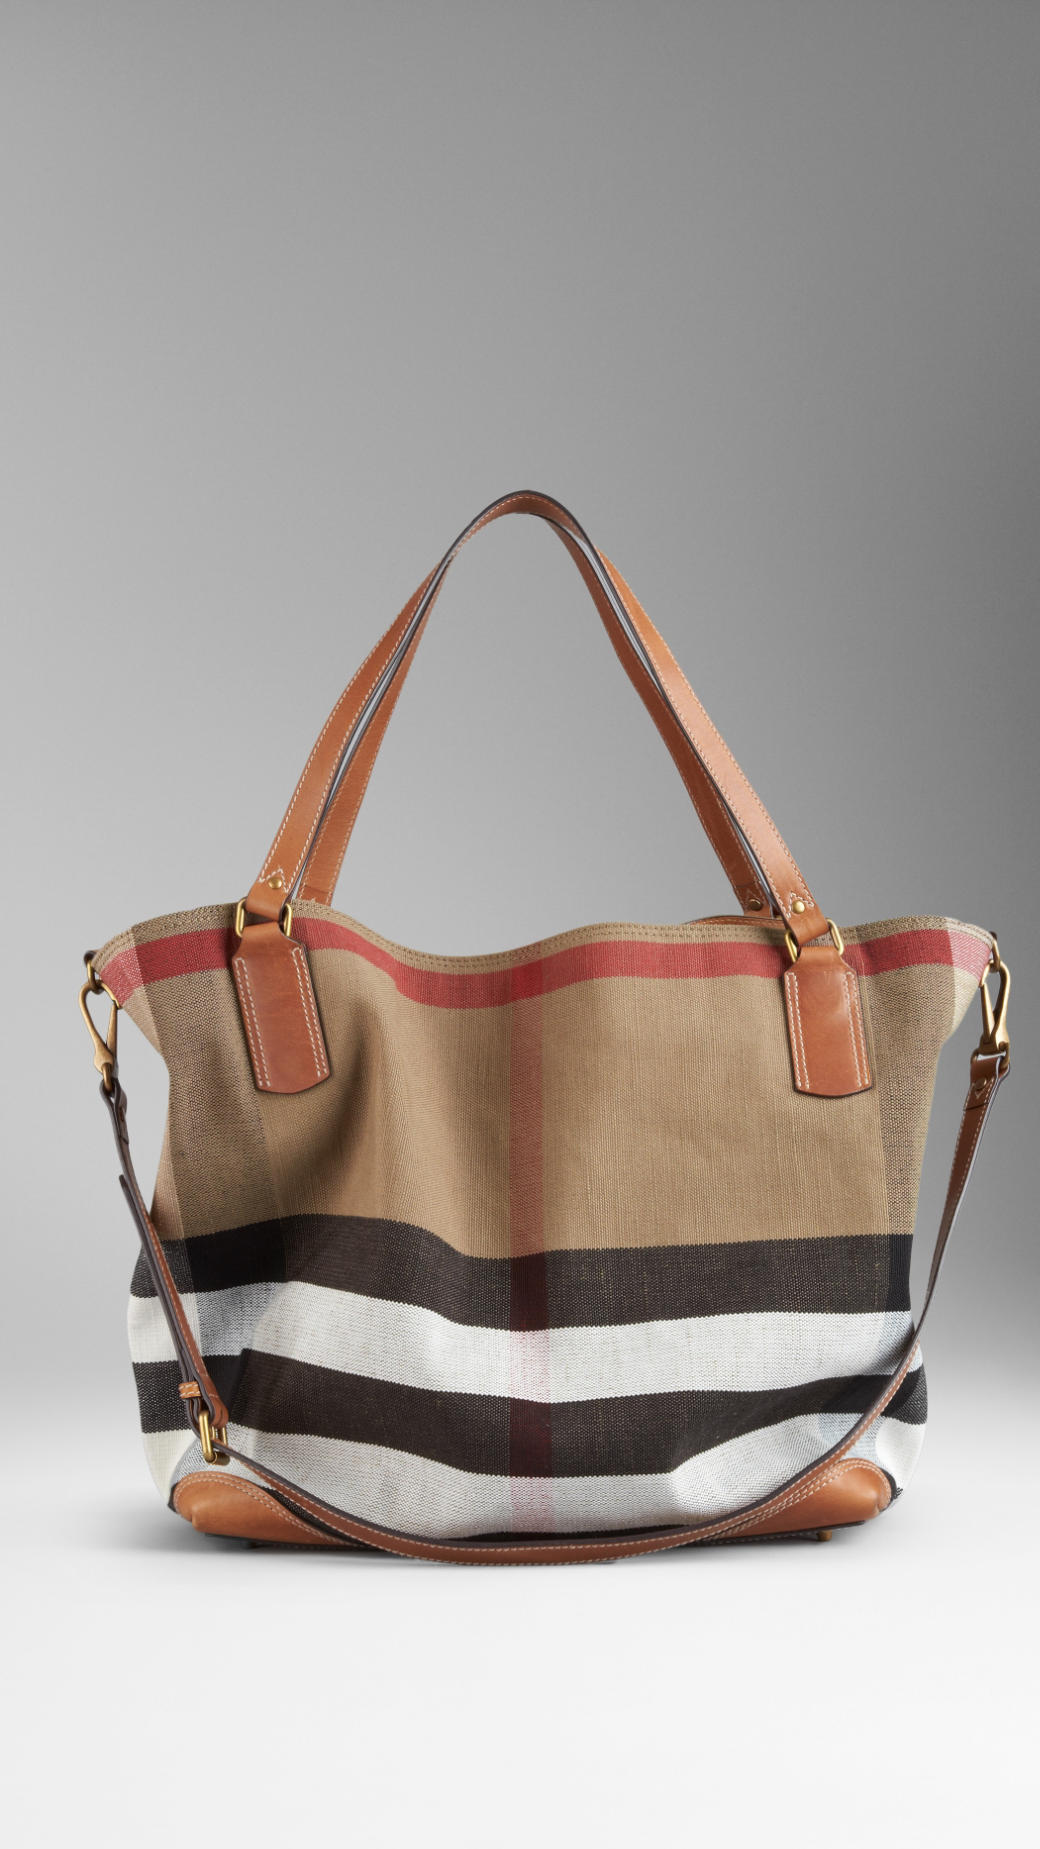 40c4c4329 Burberry Brit Large Brit Check Tote Bag in Brown - Lyst